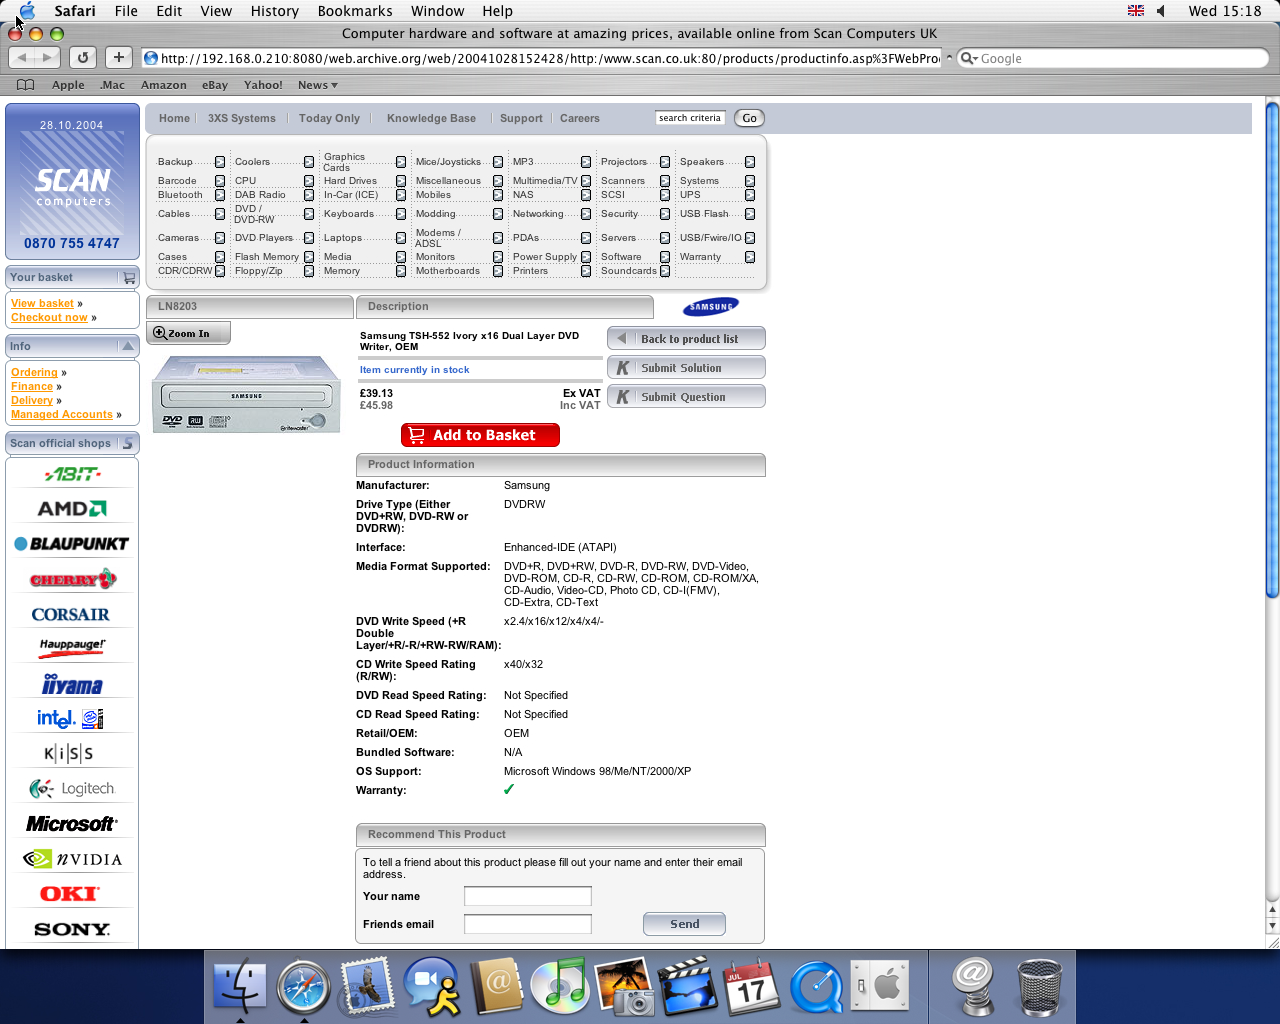 OS X 10.3 PPC with Safari 1.1 displaying a page from Scan Computers archived at October 28, 2004 at 15:24:28